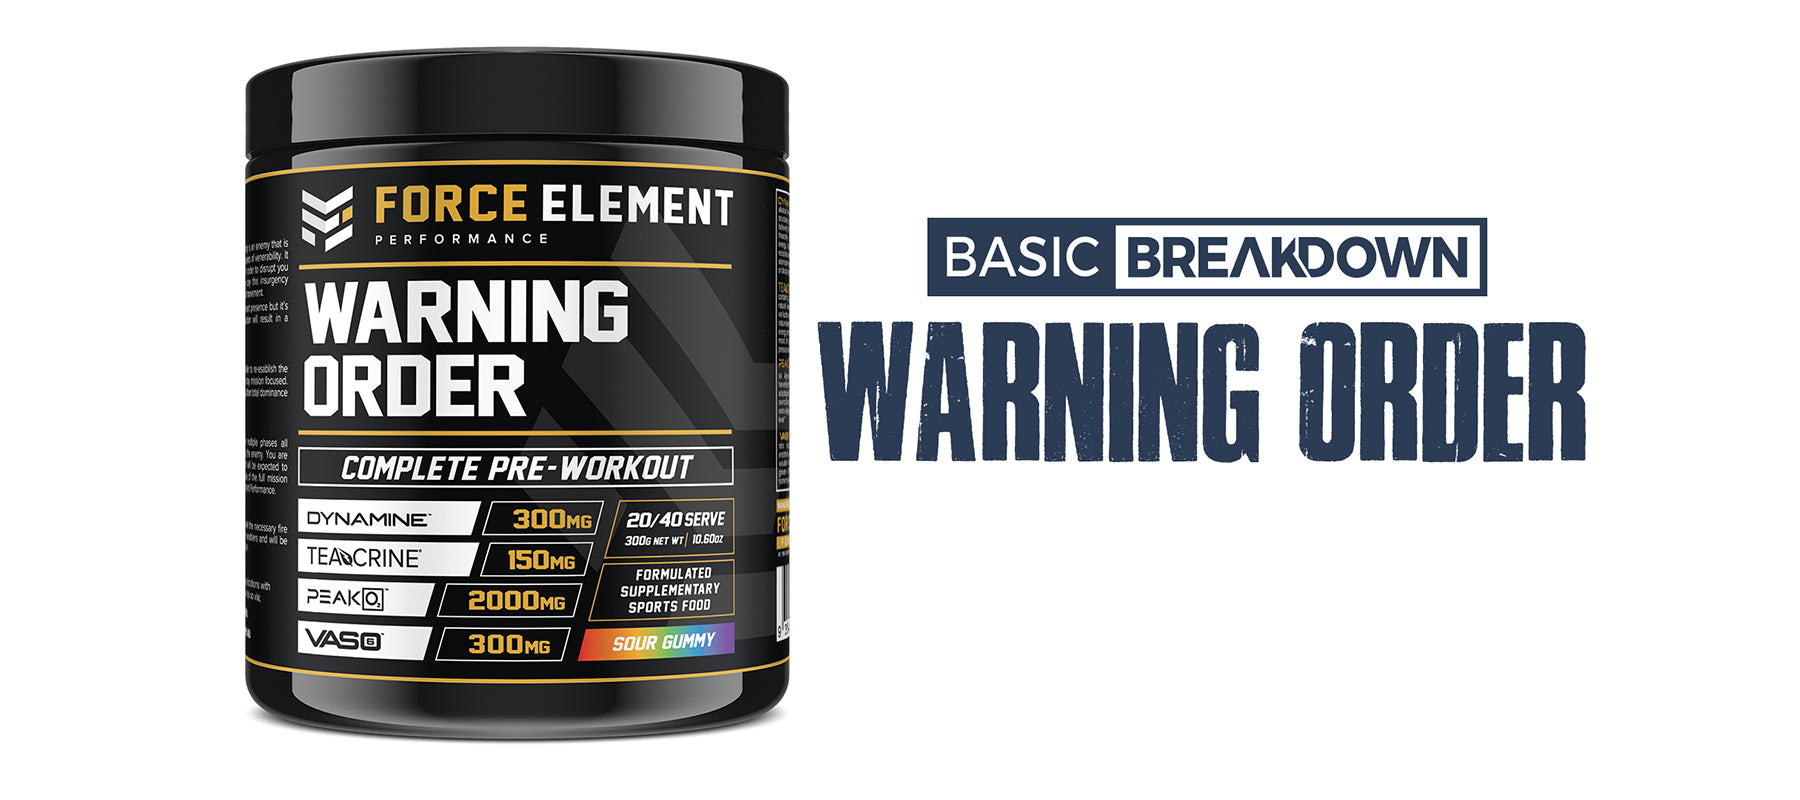 Force Element Performance Warning Order Supplement Review | Basic Breakdown